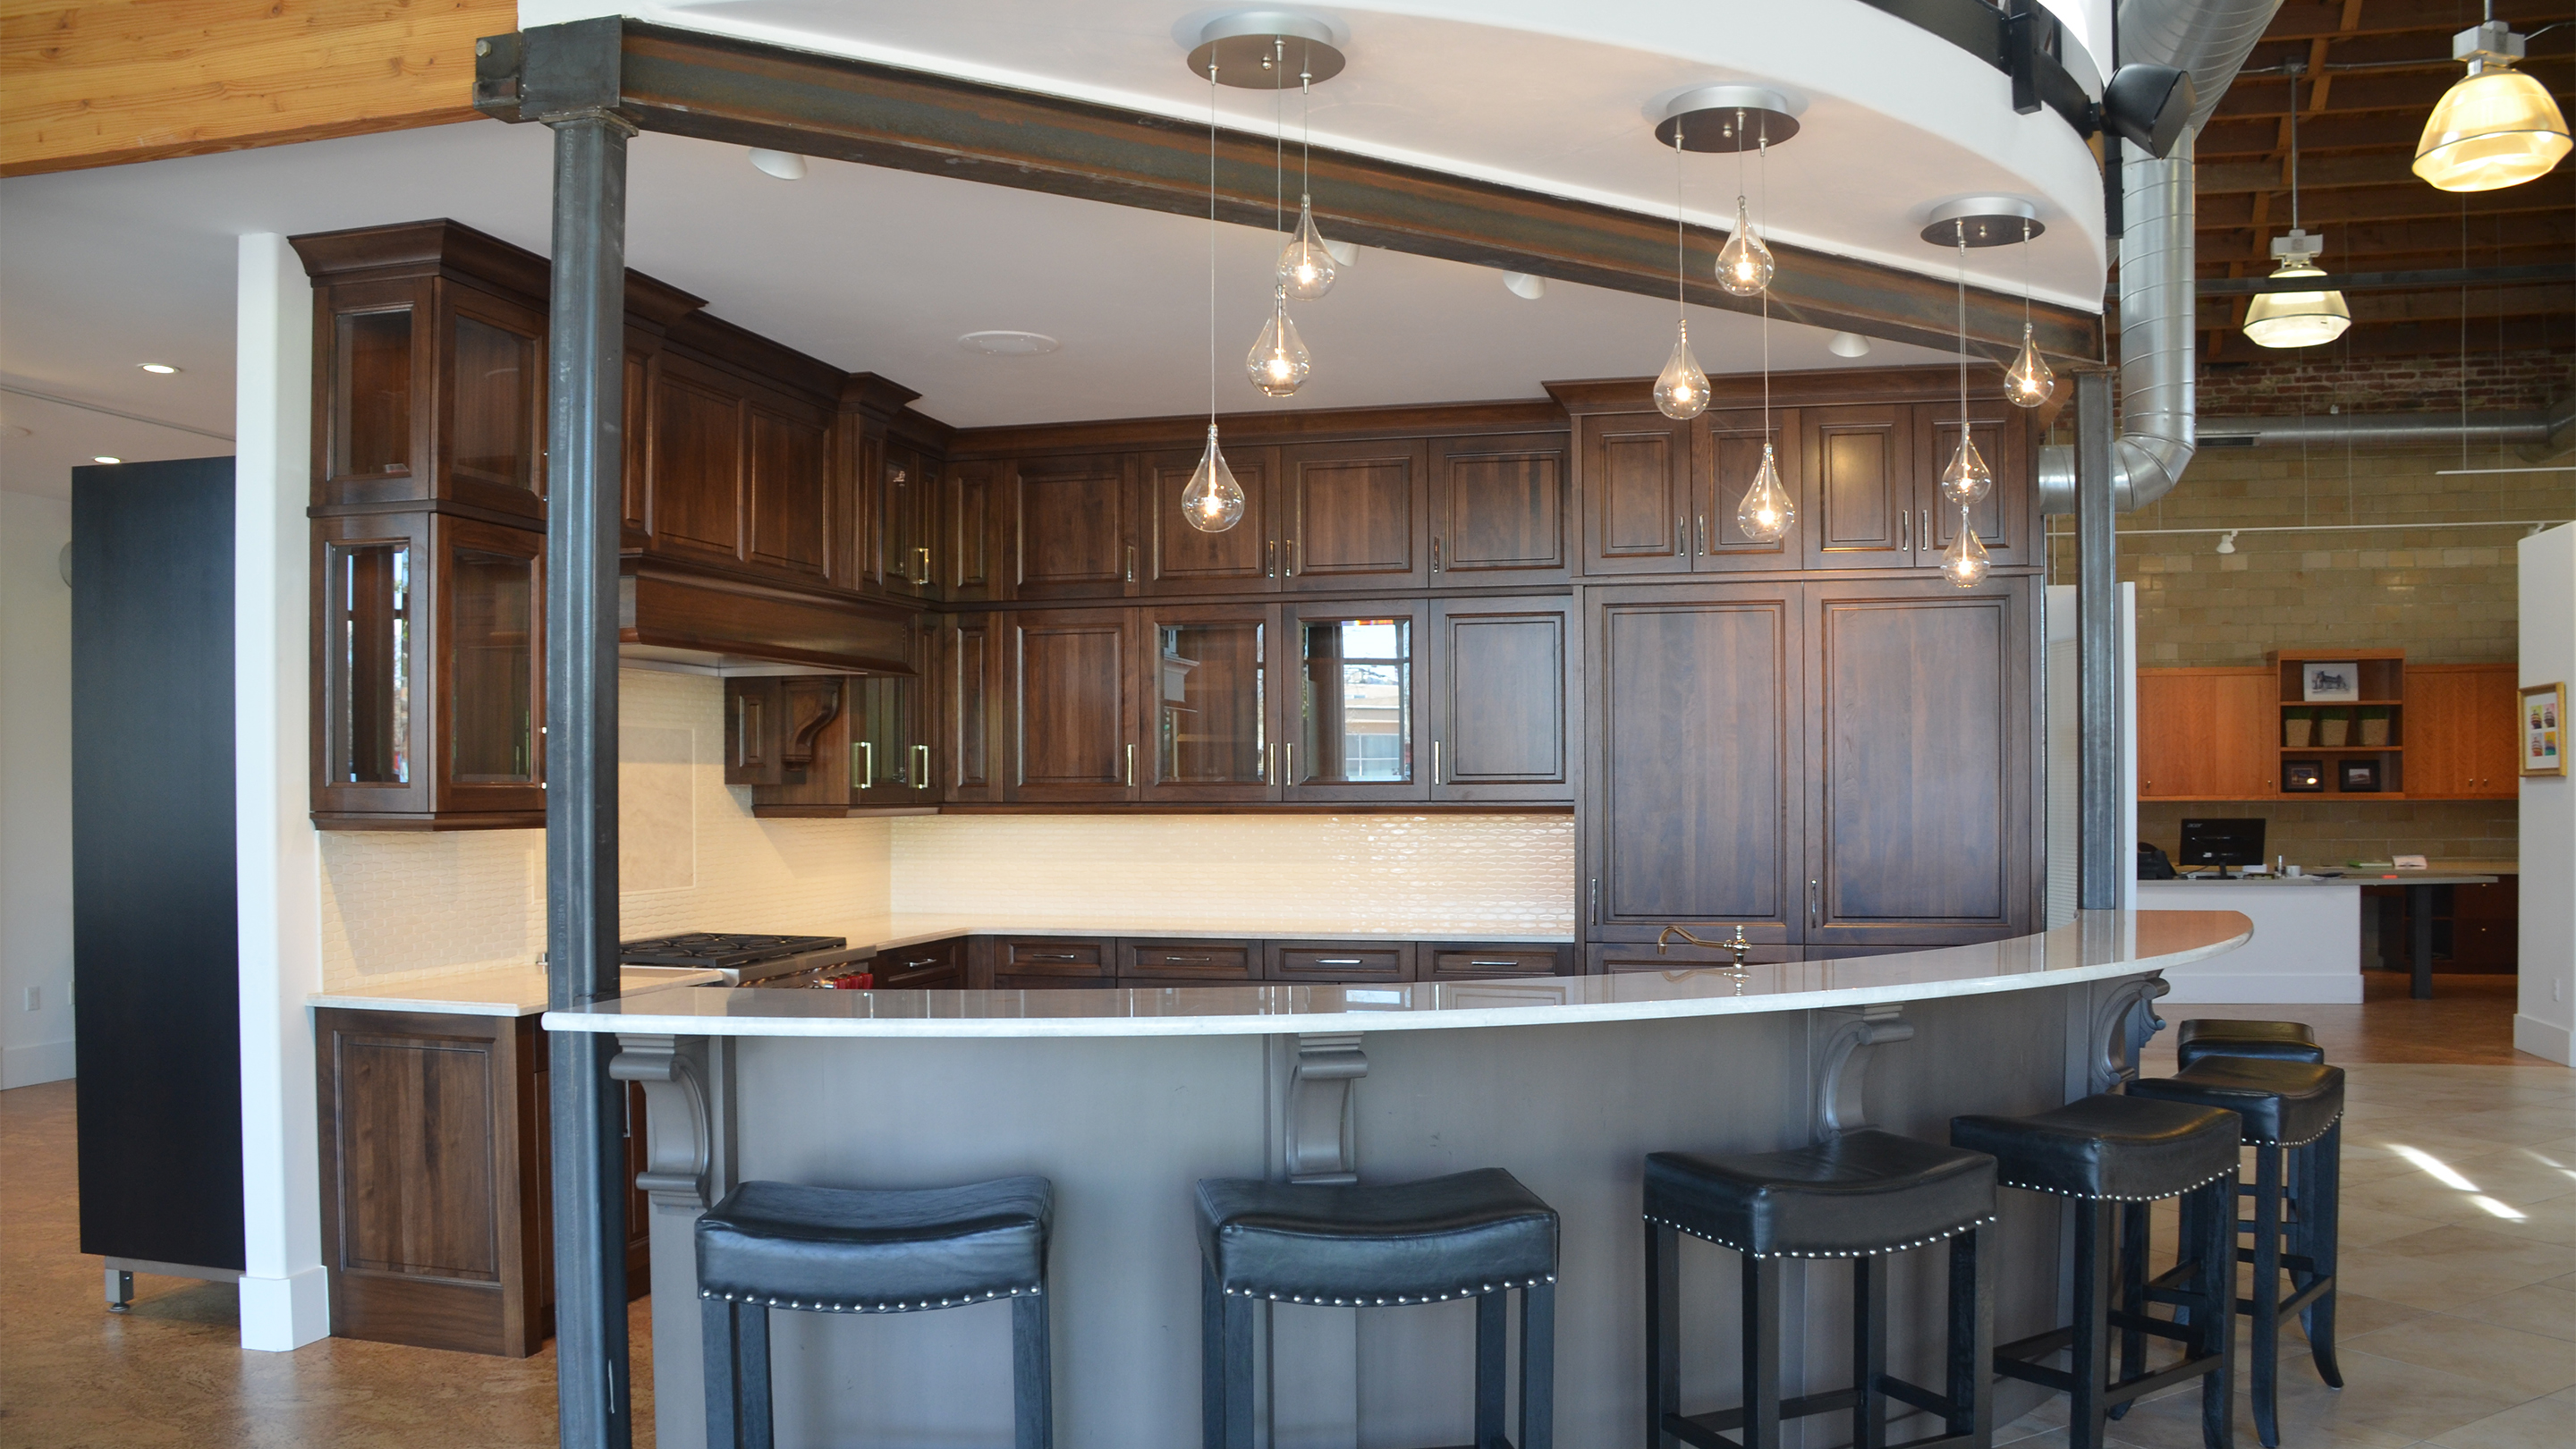 Kitchen And Bath Design Quad Cities Kitchen And Bath Index Shows Industry Growth Marketplace